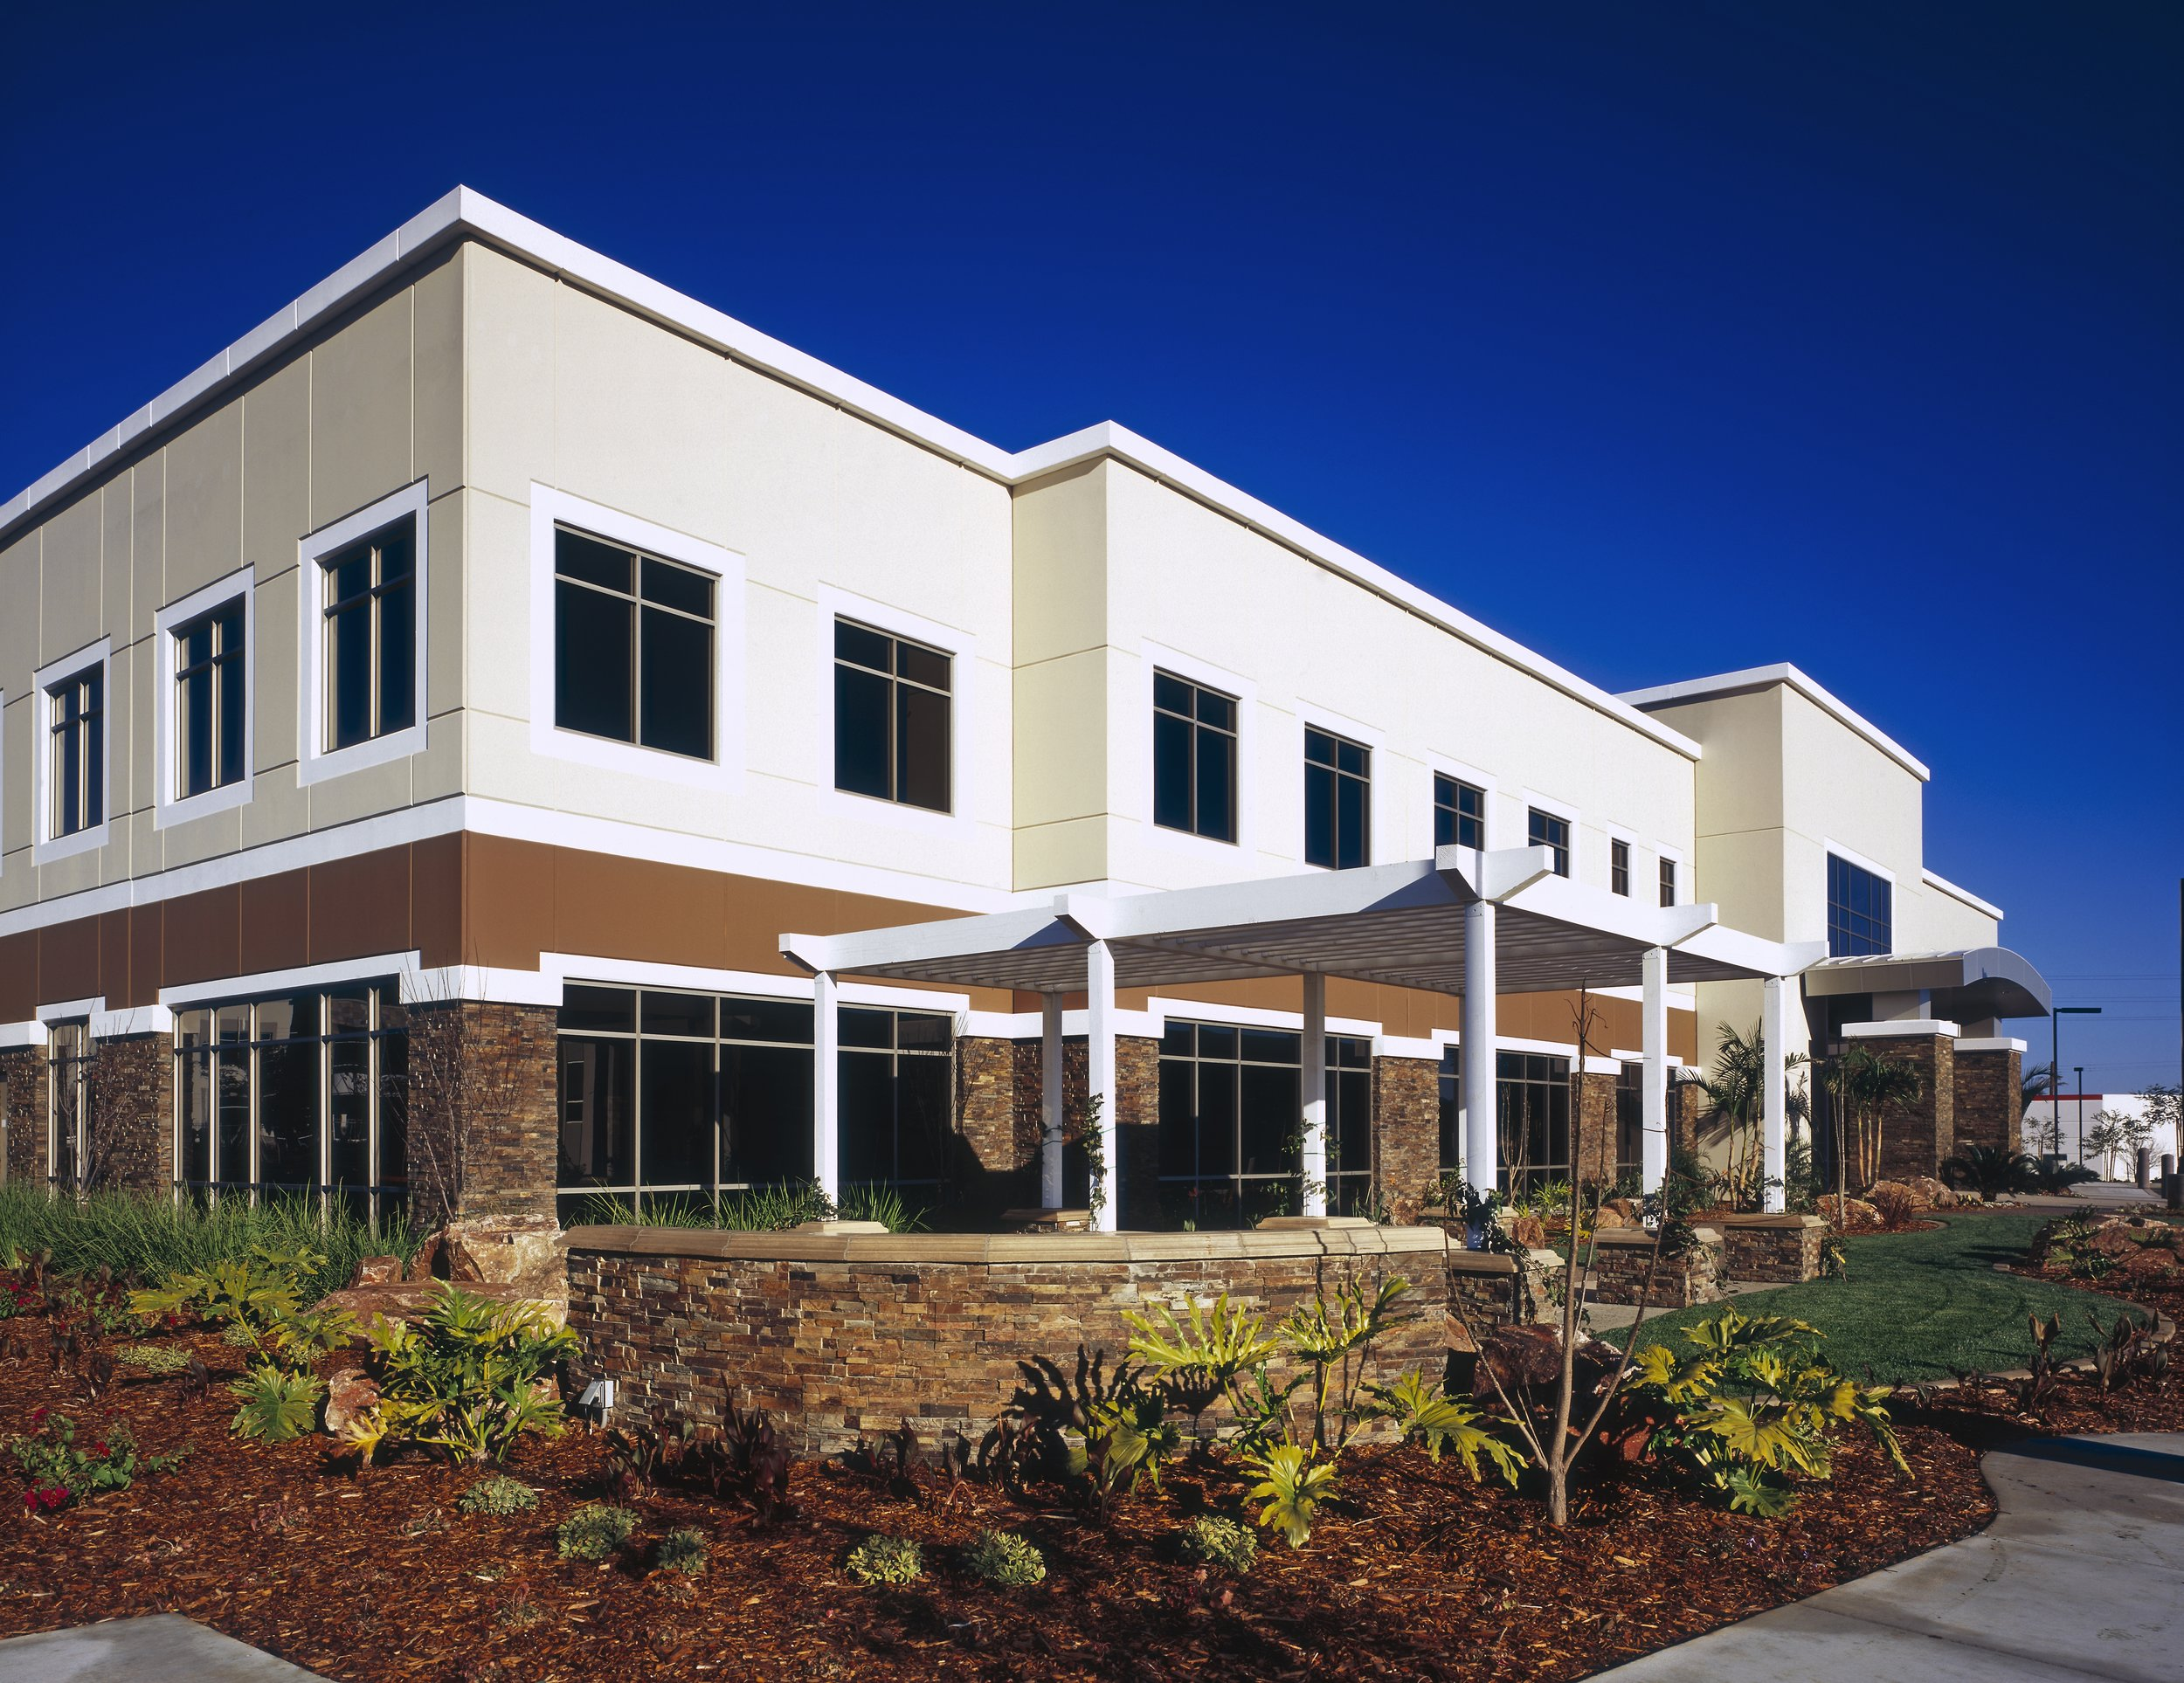 Ruffin Road Business Plaza built by K.D.Stahl Construction